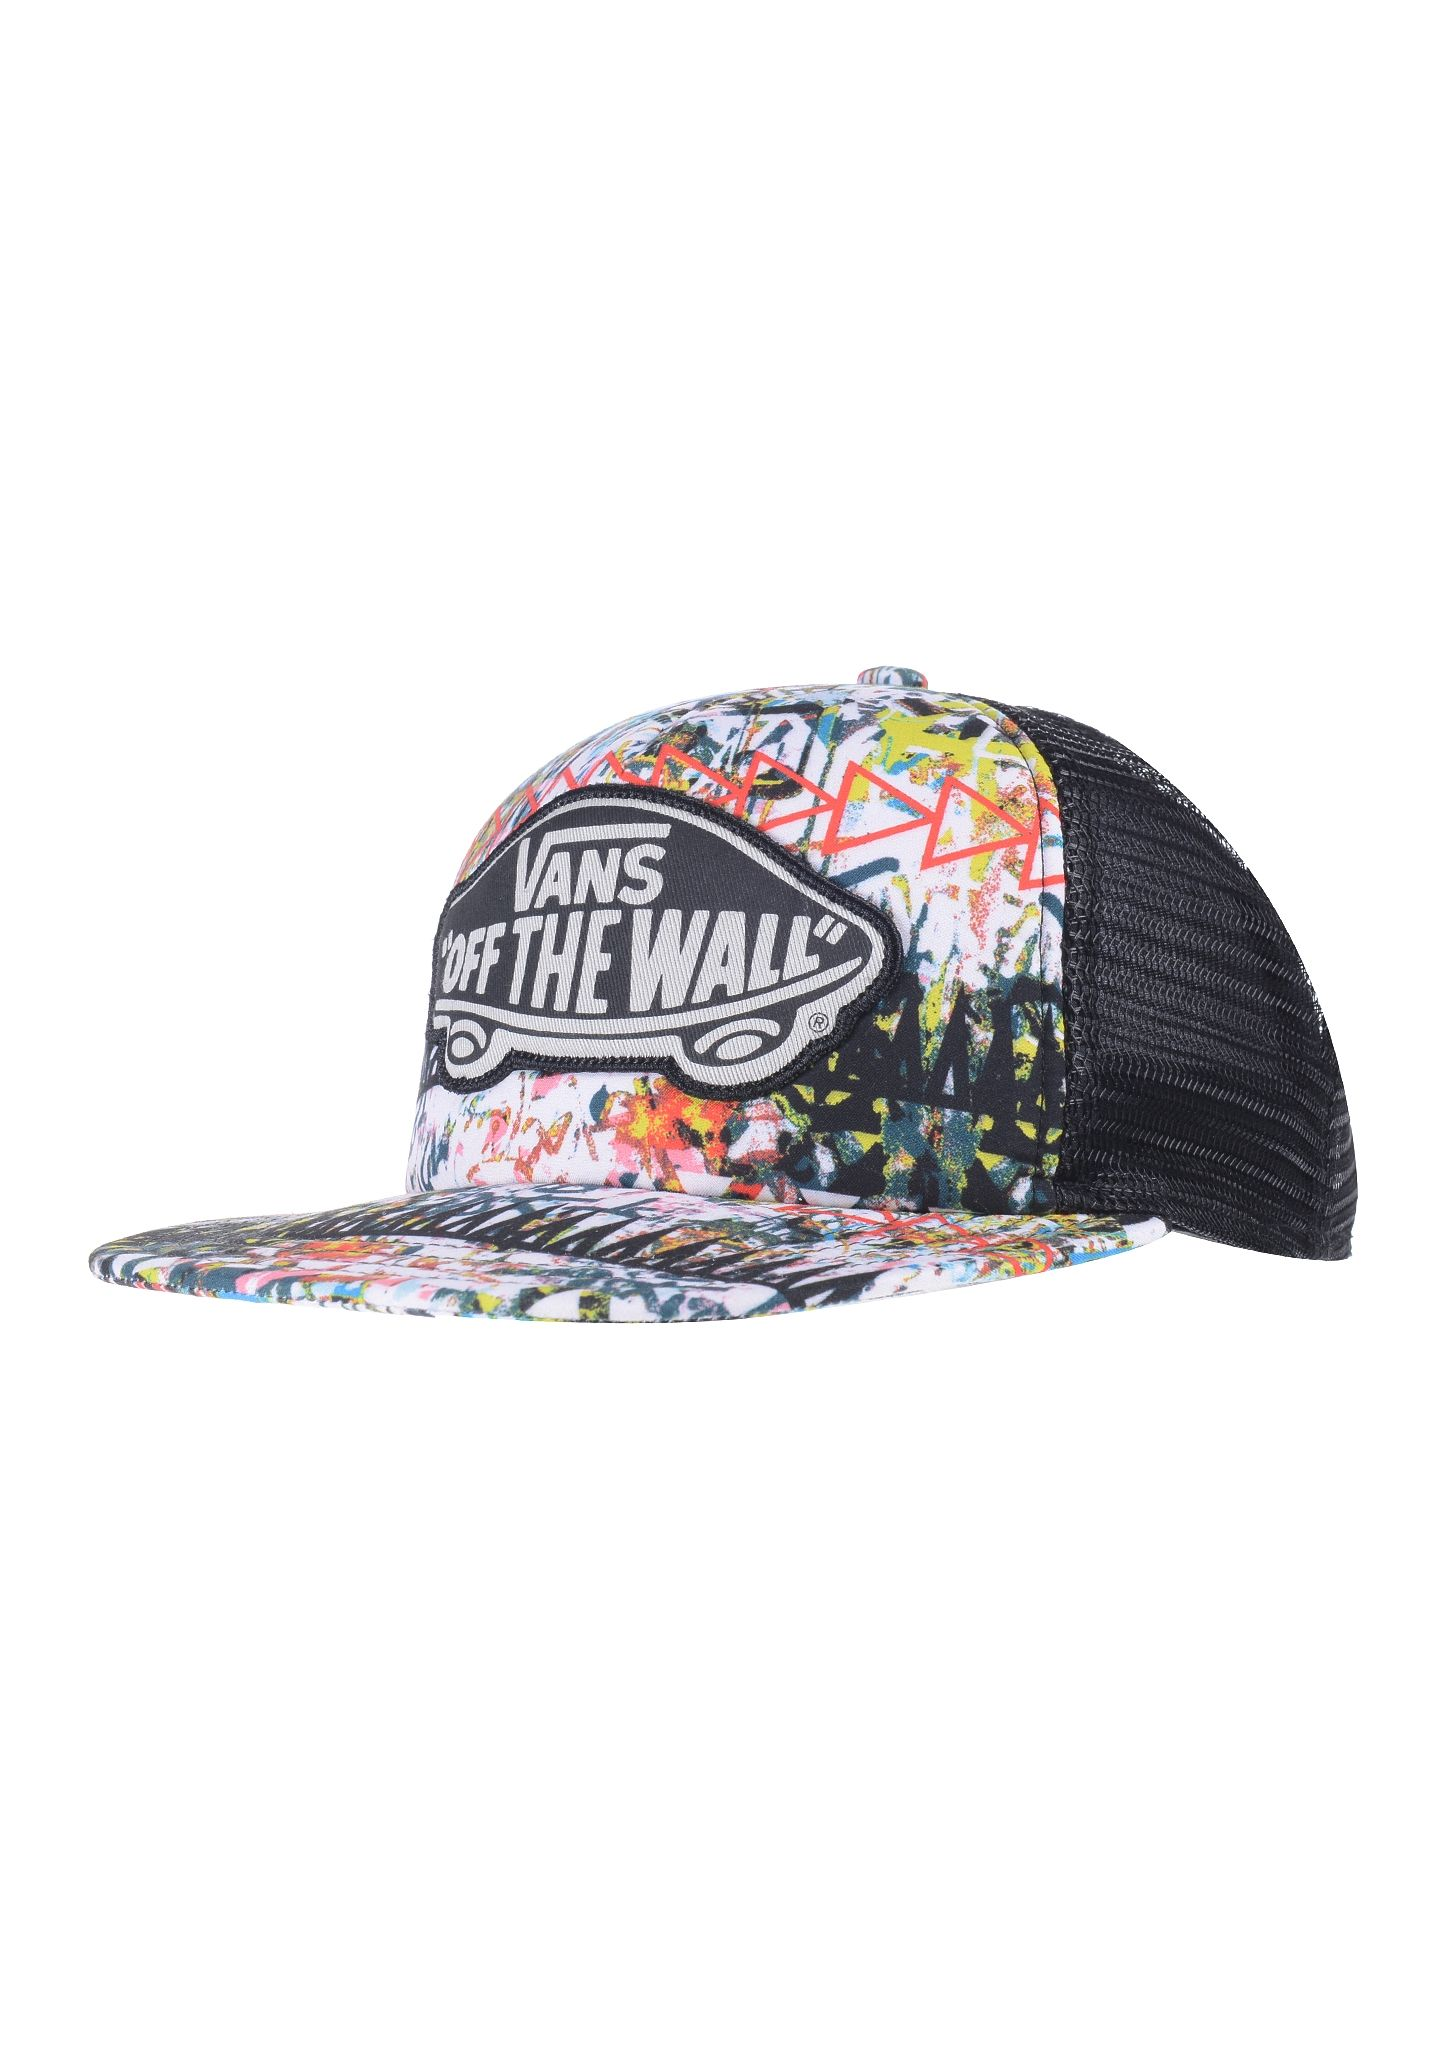 9599b77309b8d Vans Beach Girl - Gorra de camionero para Mujeres - Multicolor - Planet  Sports